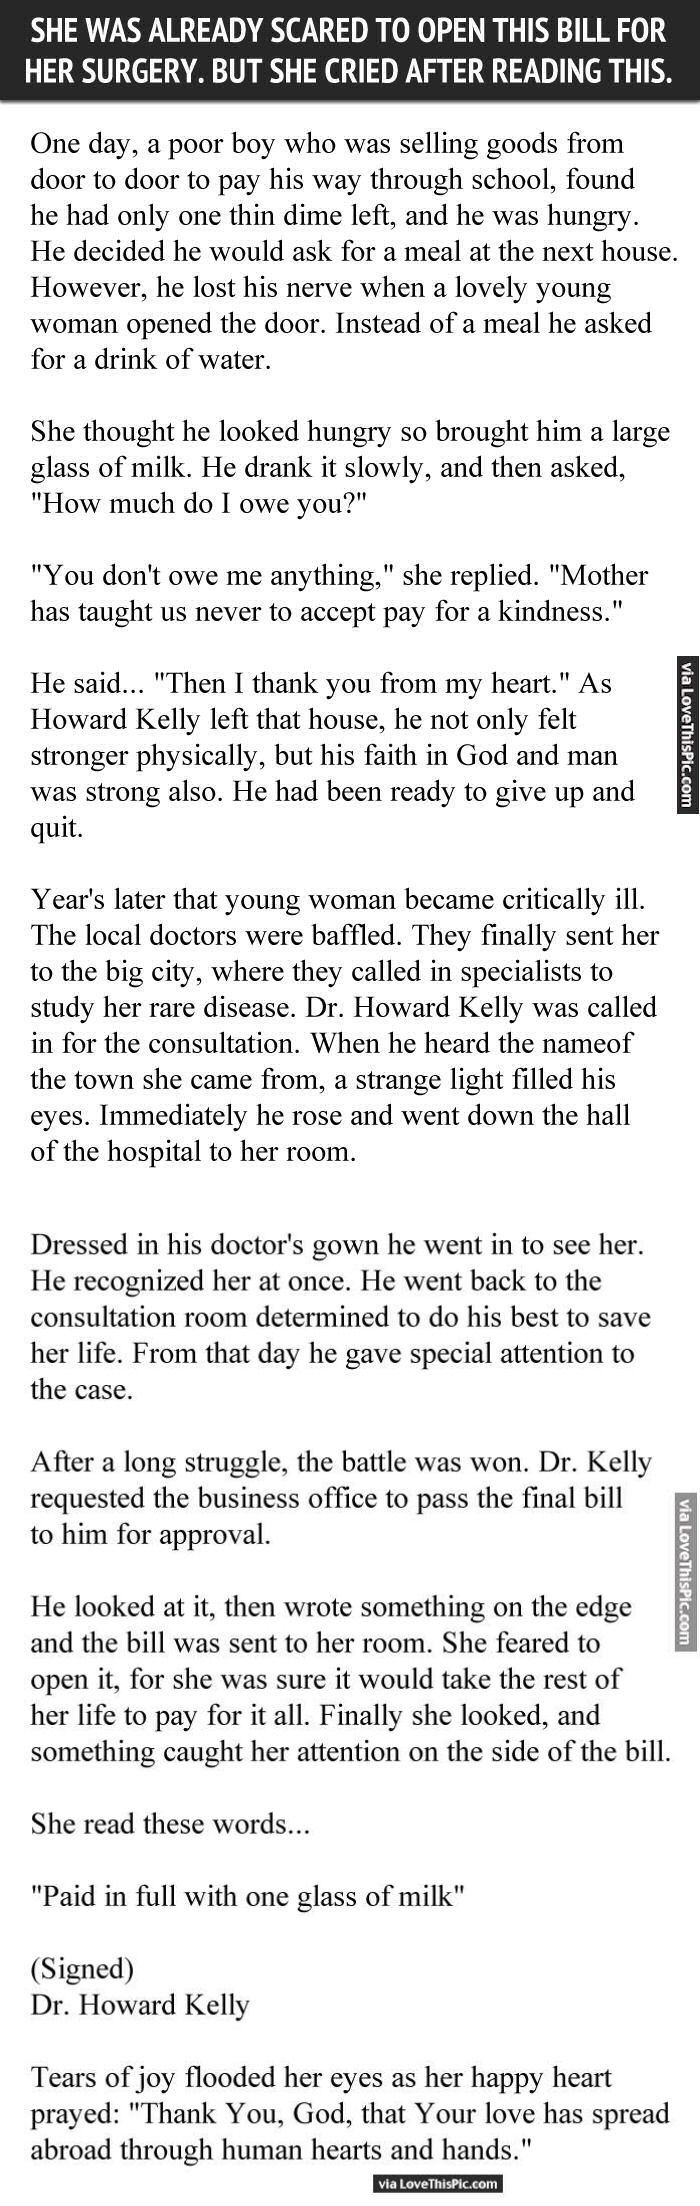 good sad story I think that this is actually heartbreakingly sad this woman does not feel competent or good enough  this is a sad story for everyone  book by its cover 566.